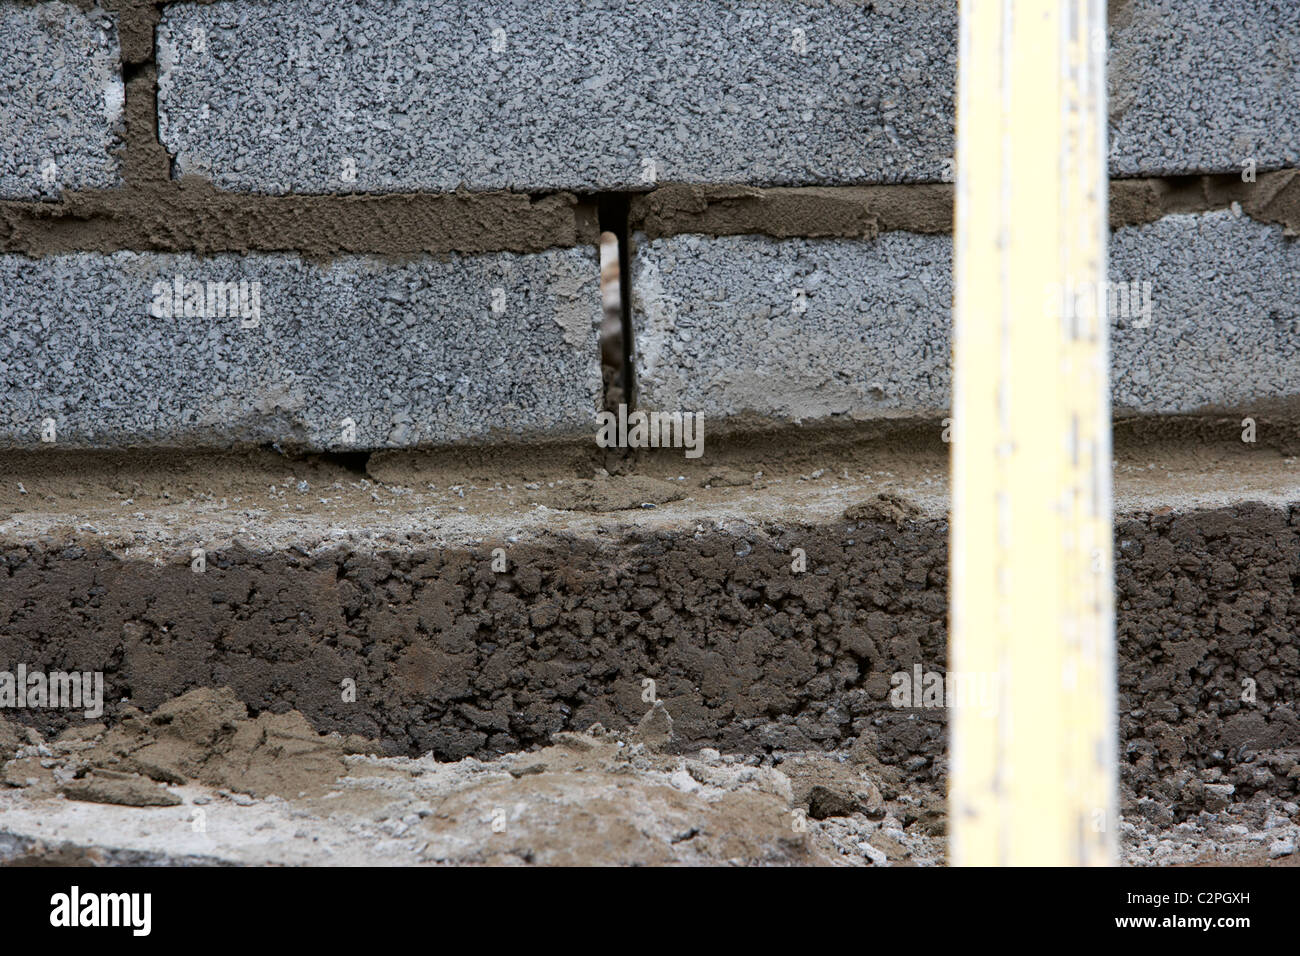 drainage gap in bricklaying wall with half cement breeze